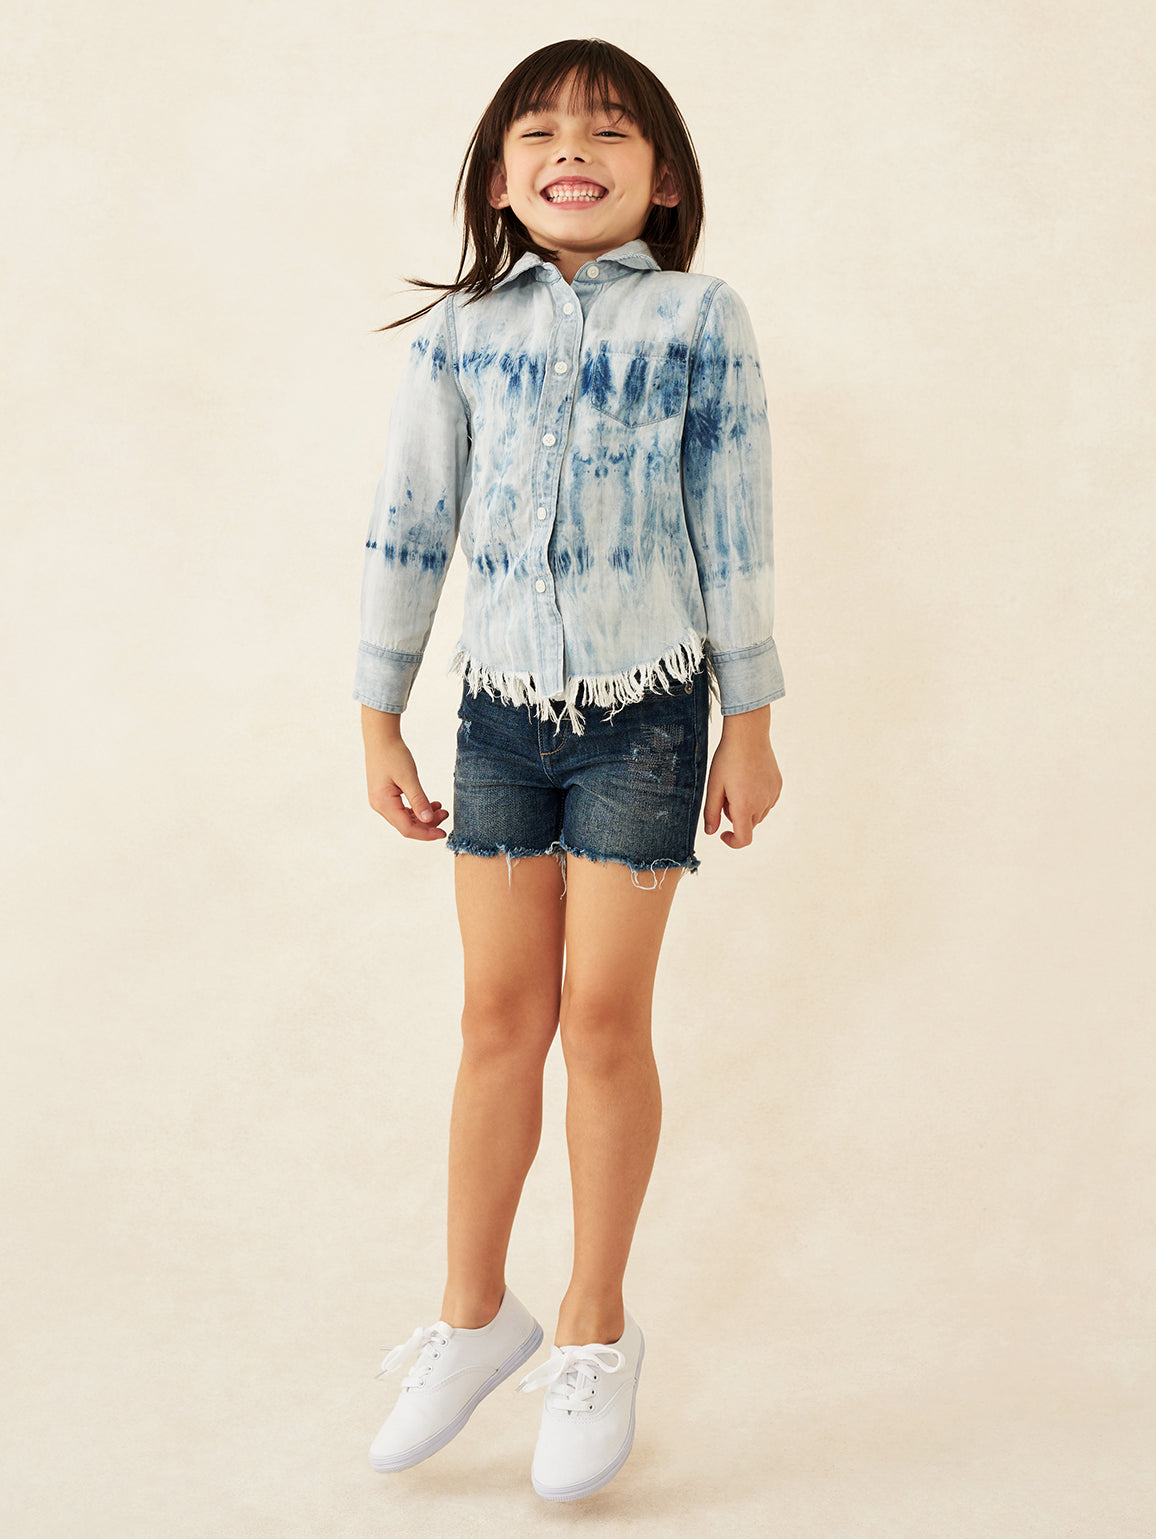 Lucy Toddler Short | Liberty DL 1961 Denim